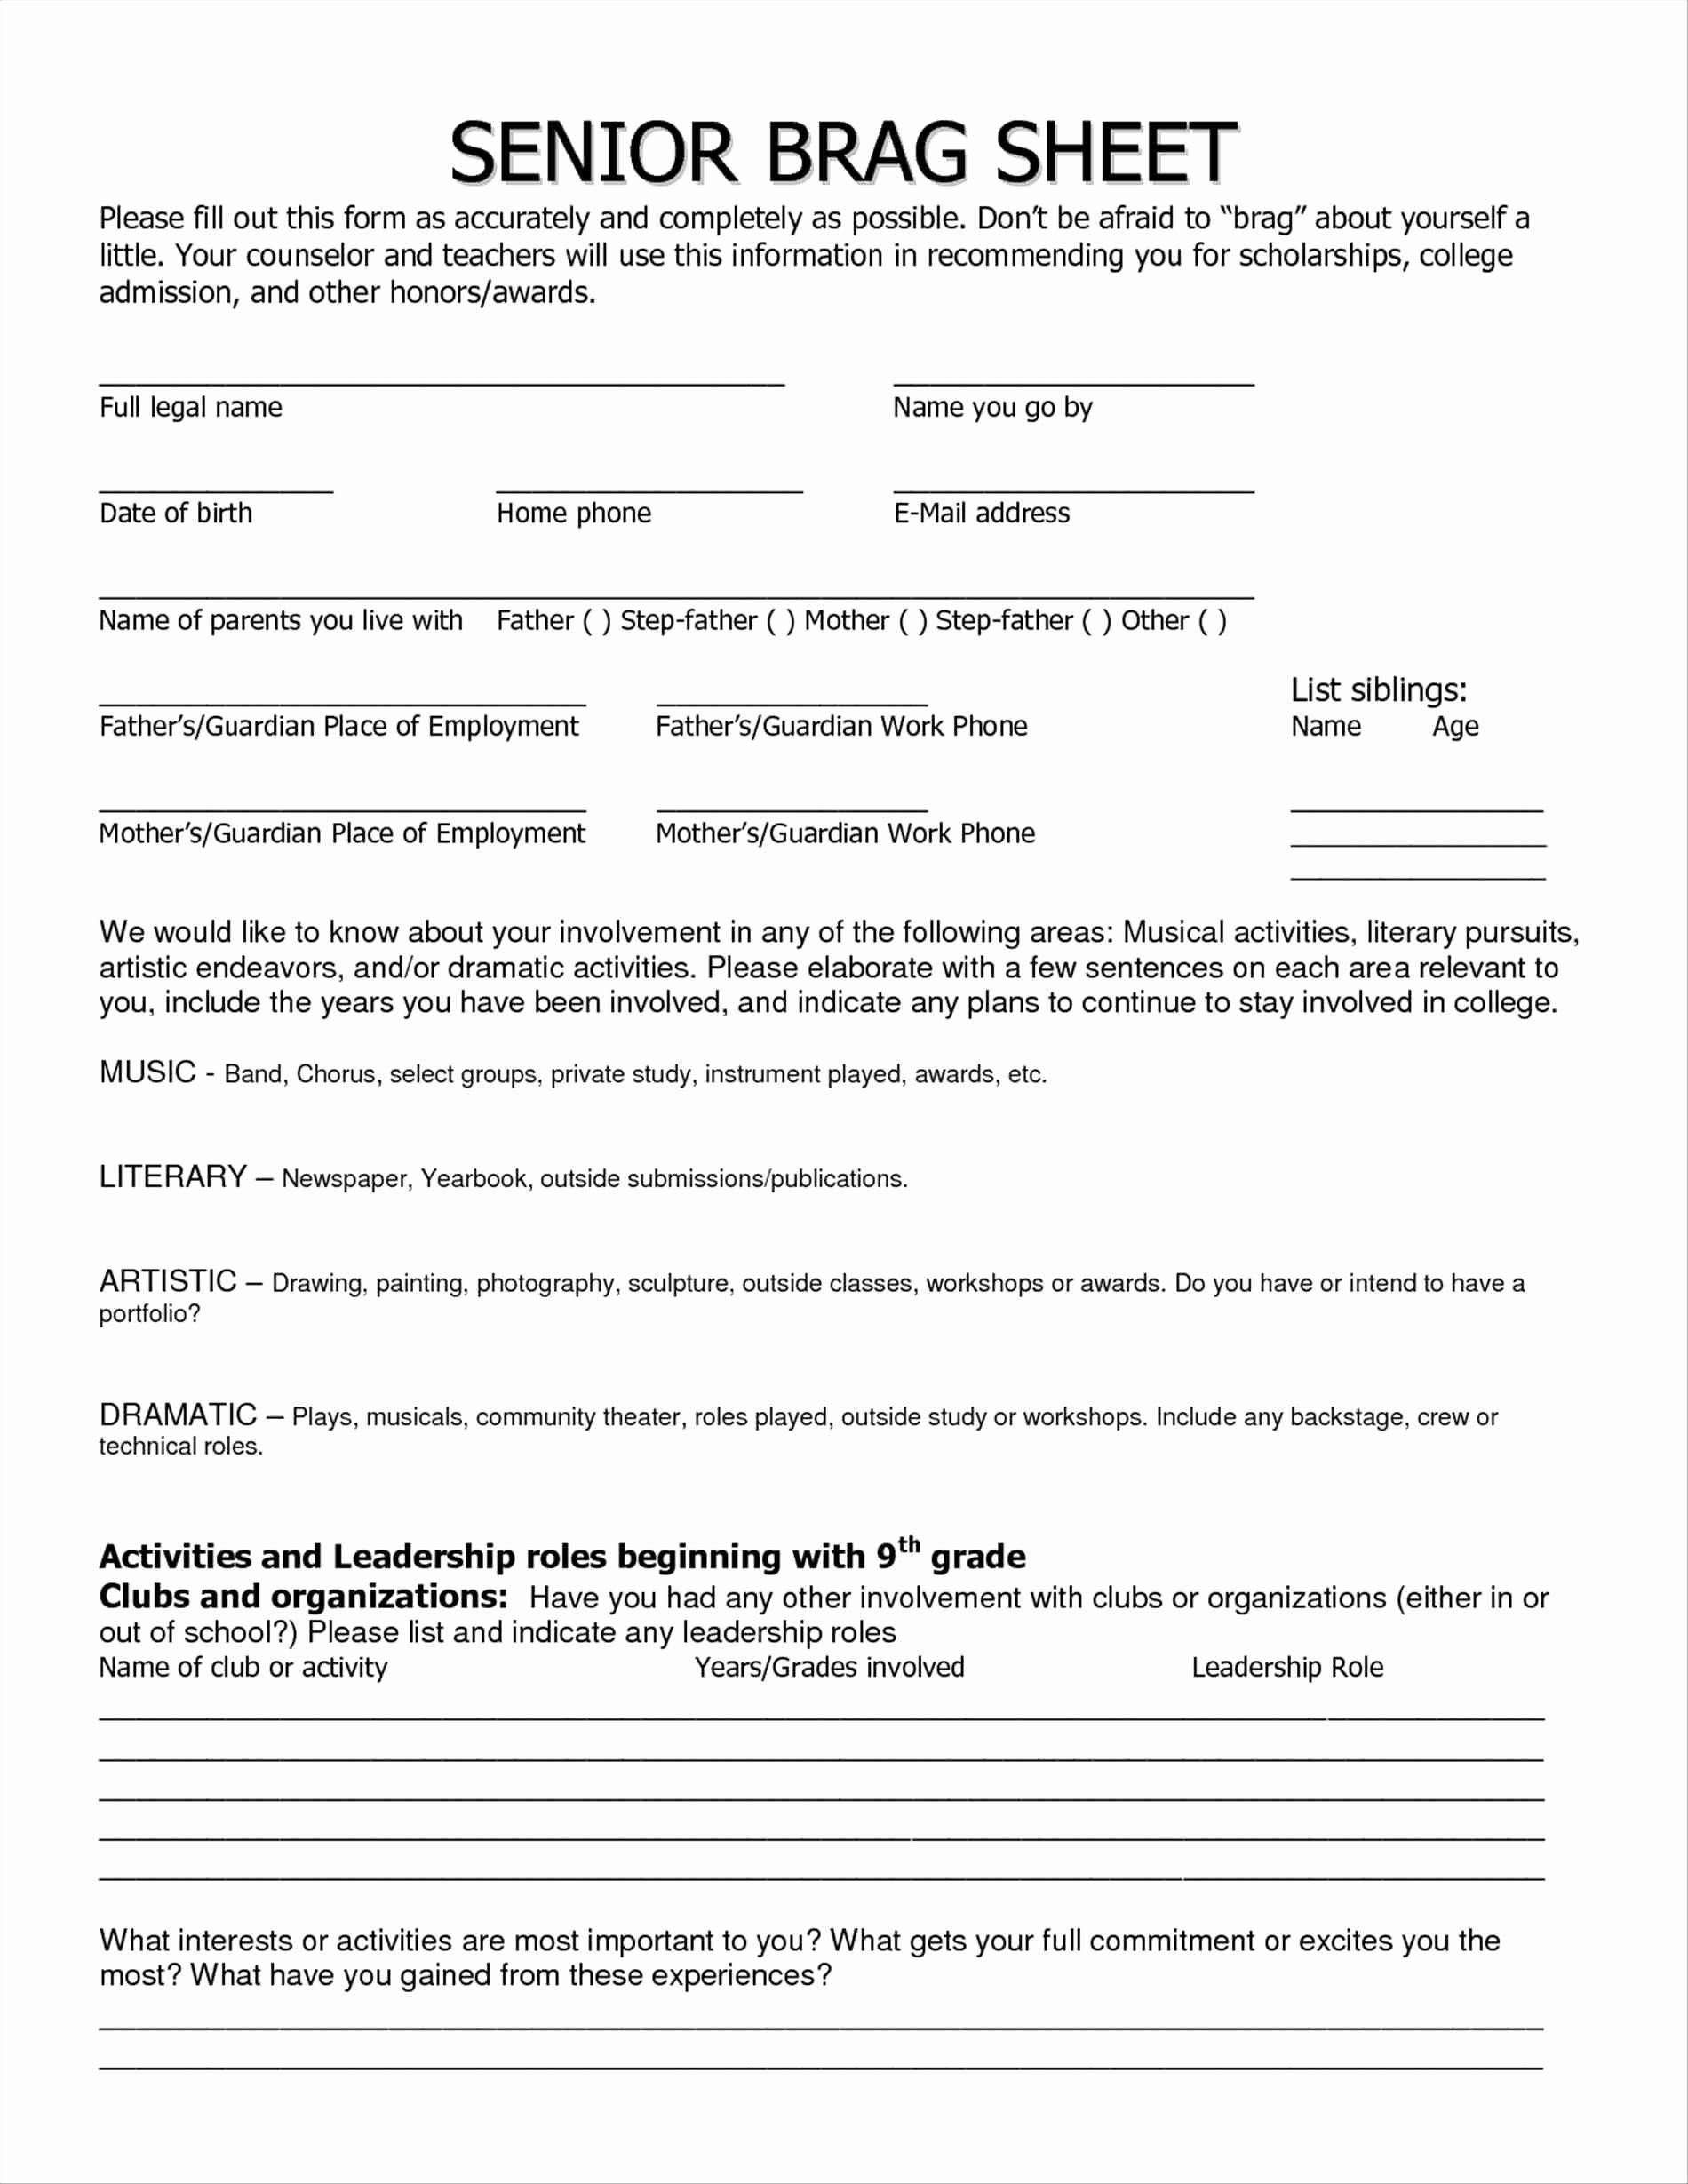 Letter Of Recommendation Brag Sheet New Brag Sheet Template for Letter Re Mendation Examples